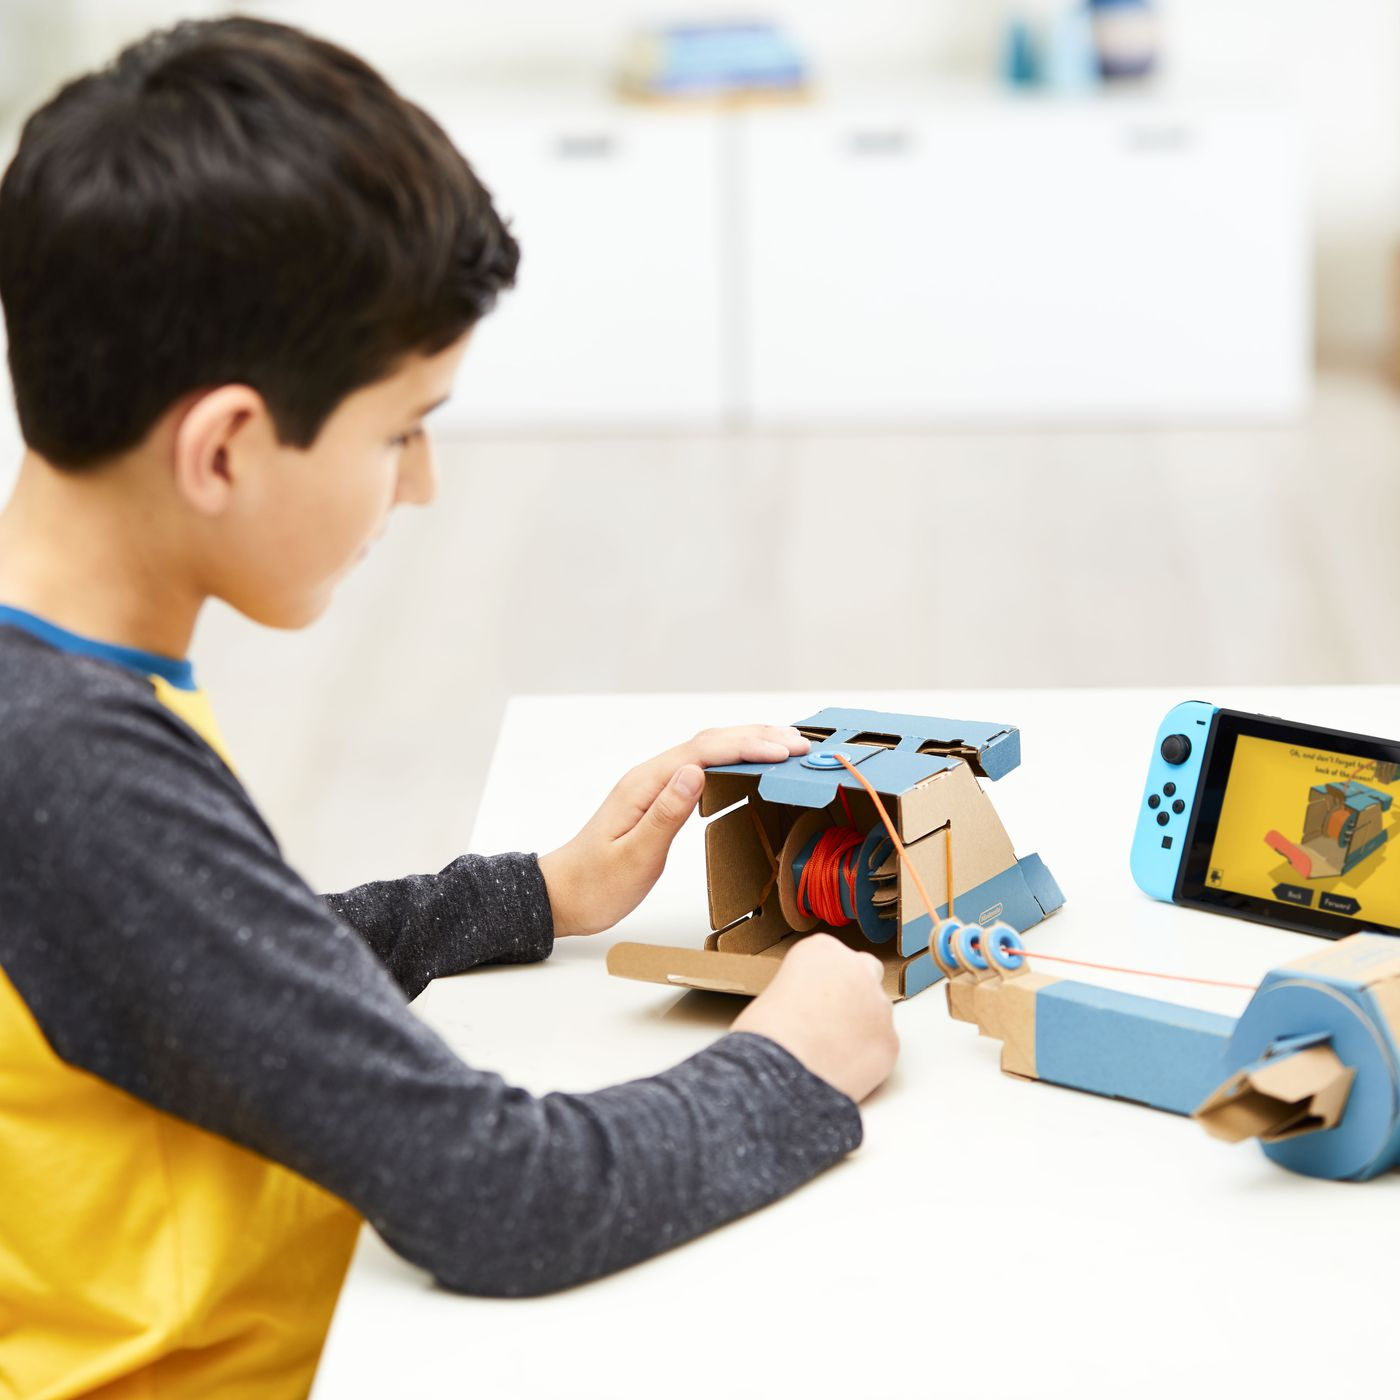 Nintendo is making a bunch of awesome diy cardboard toys for the nintendo is making a bunch of awesome diy cardboard toys for the switch the verge solutioingenieria Image collections